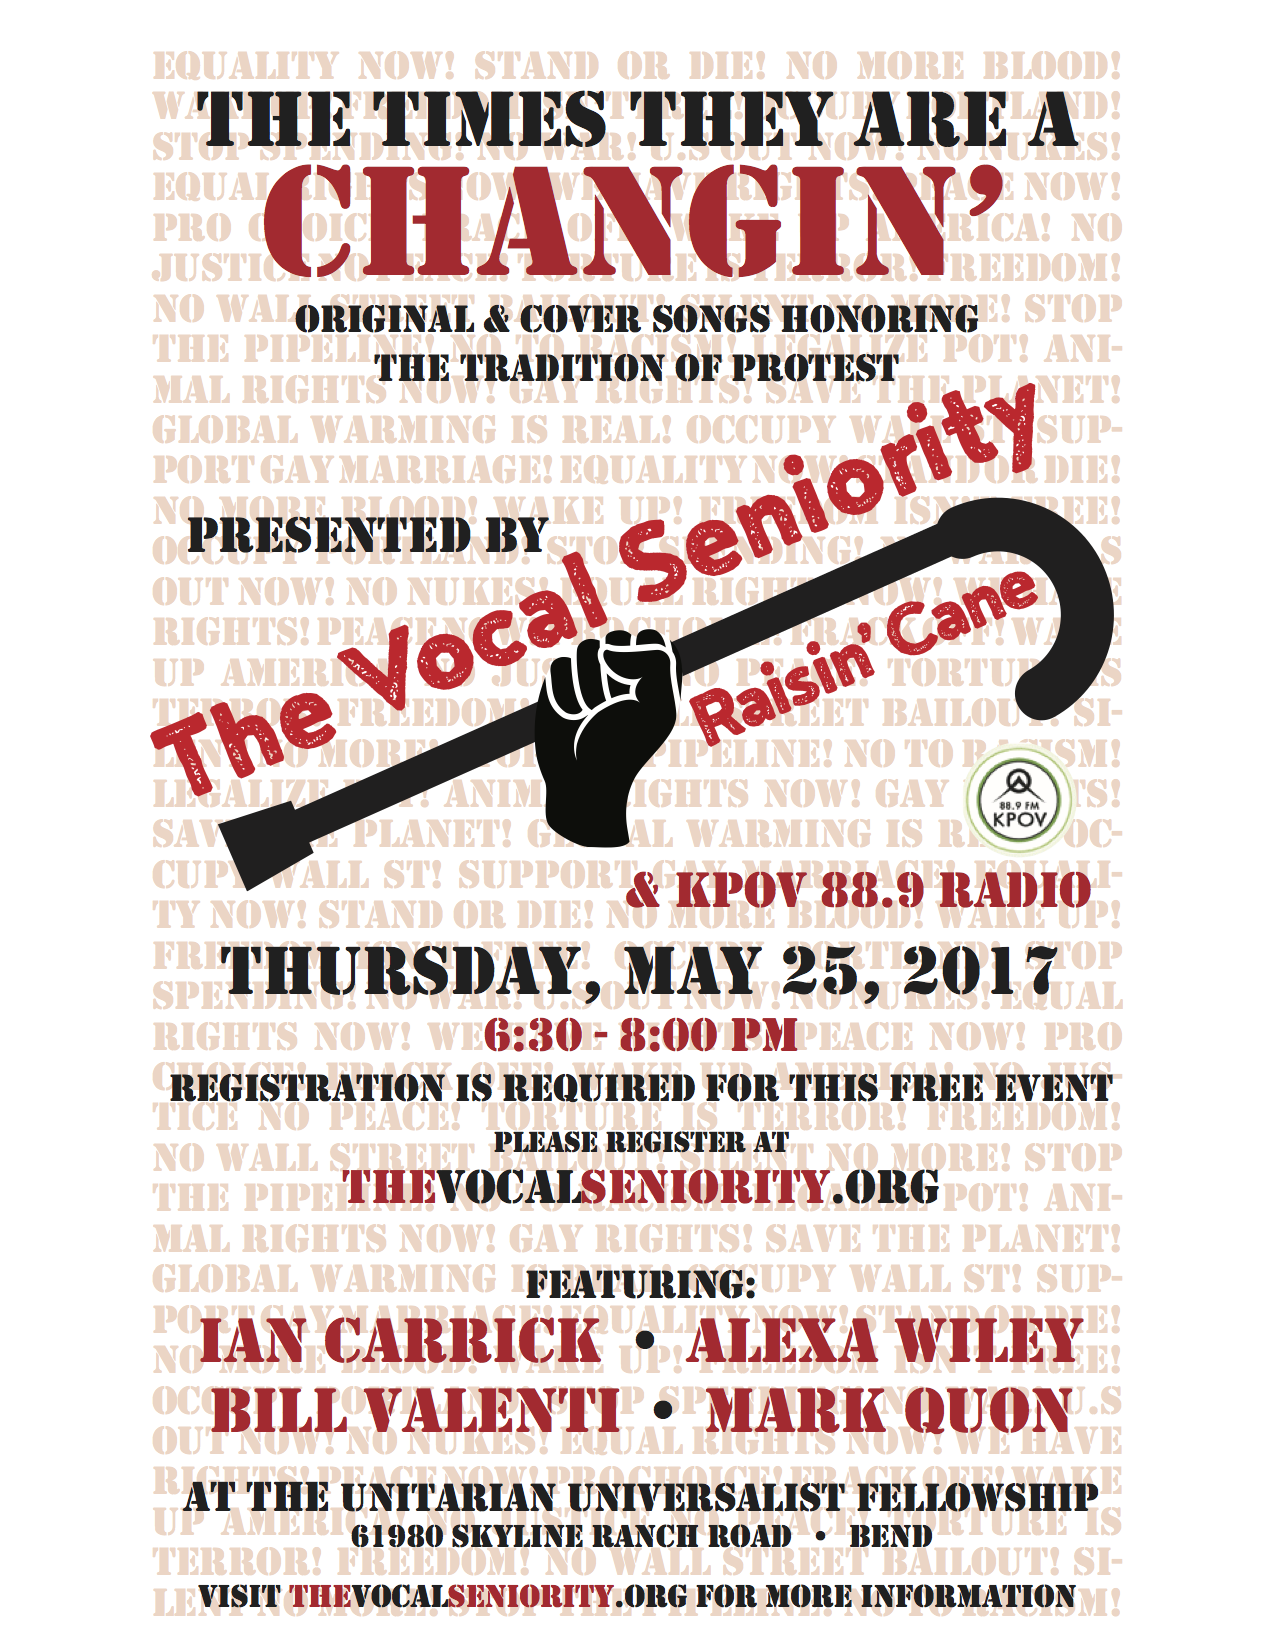 The Times They Are A Changin' poster